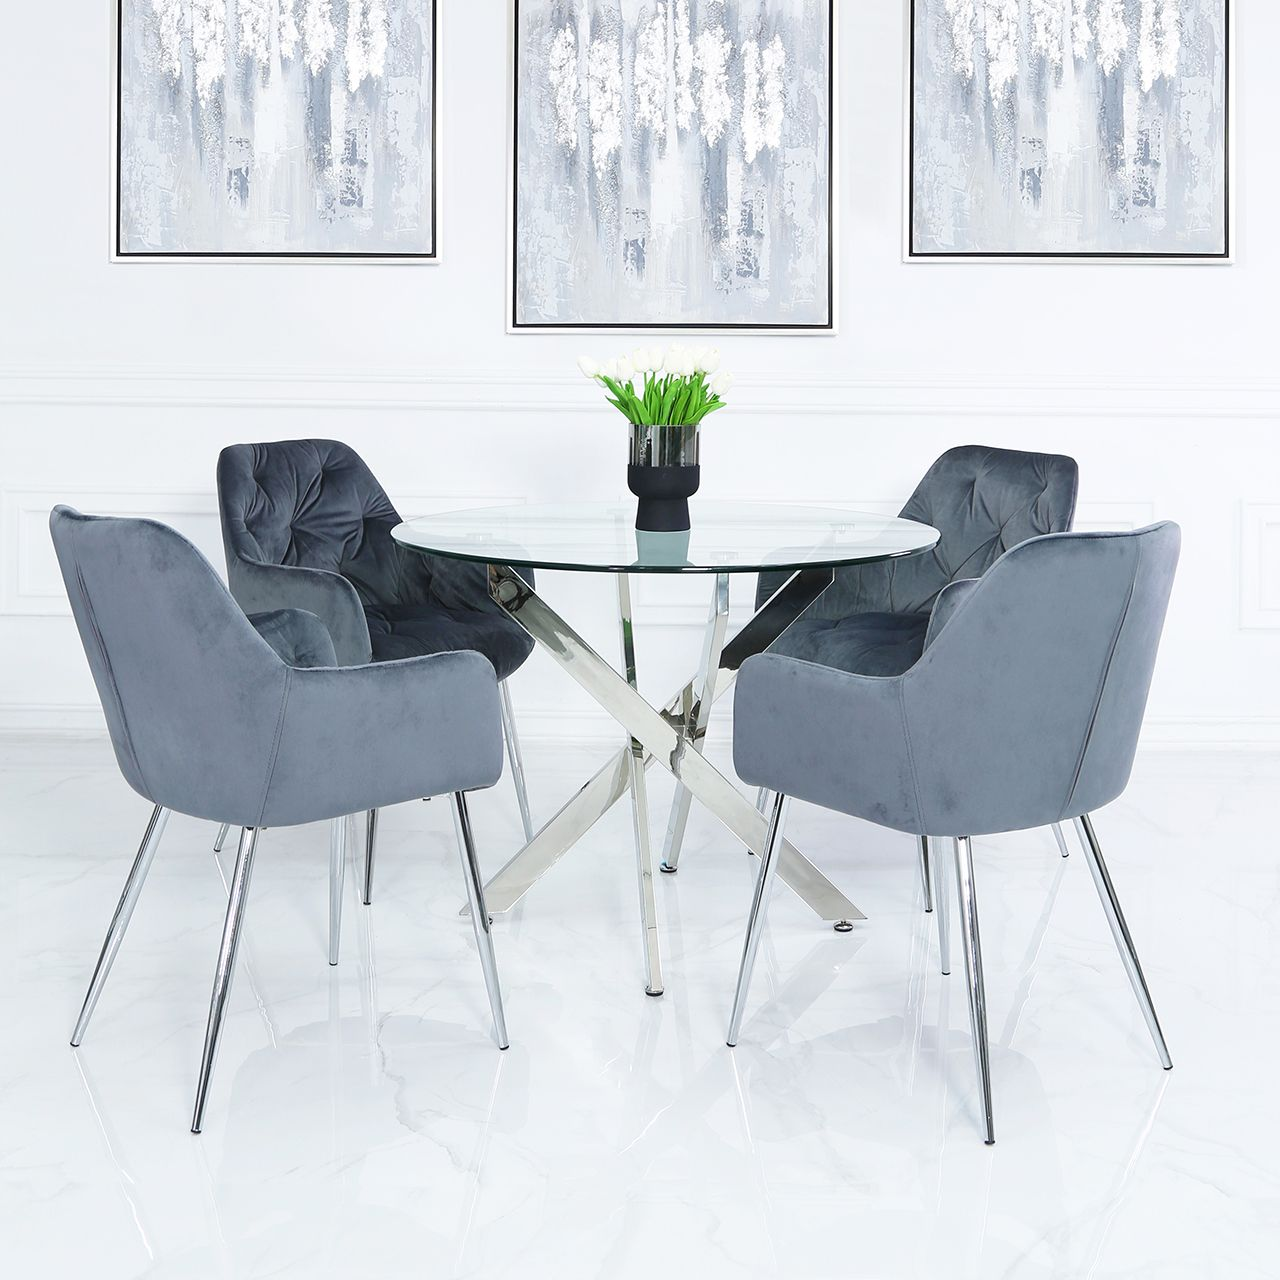 130cm Glass Round Dining Table With 4 X Grey Velvet Dining Chairs